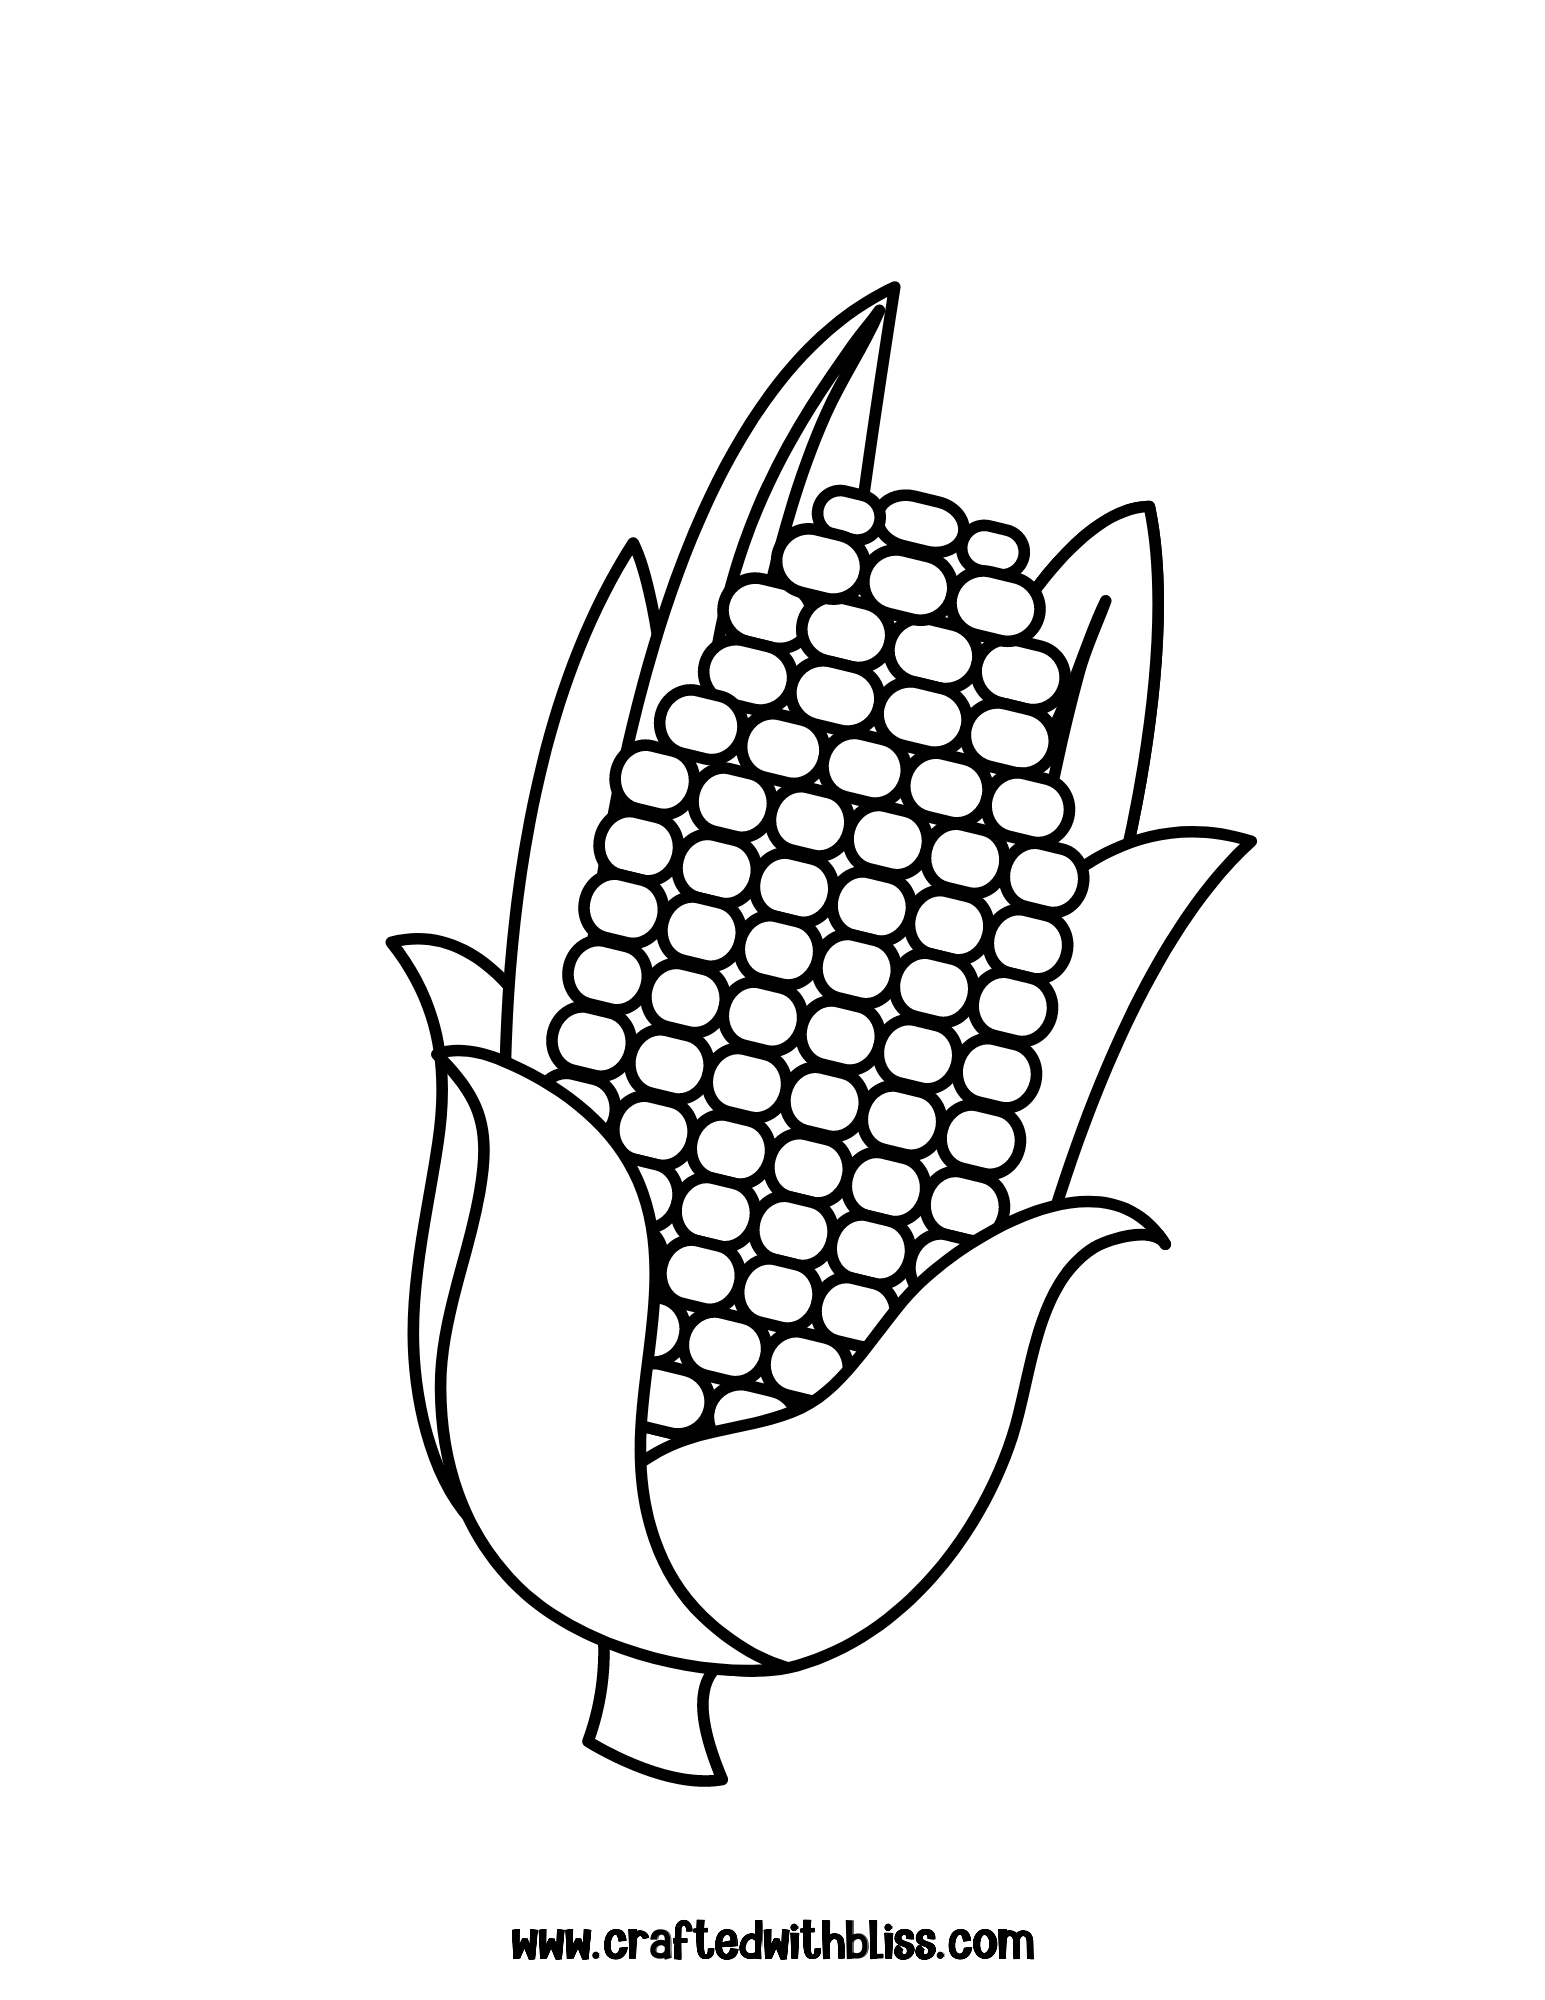 Corn Coloring Pages Corn Coloring Pages Printable Thanksgiving Activities Thanksgiving Coloring Pages Unicorn Coloring Pages